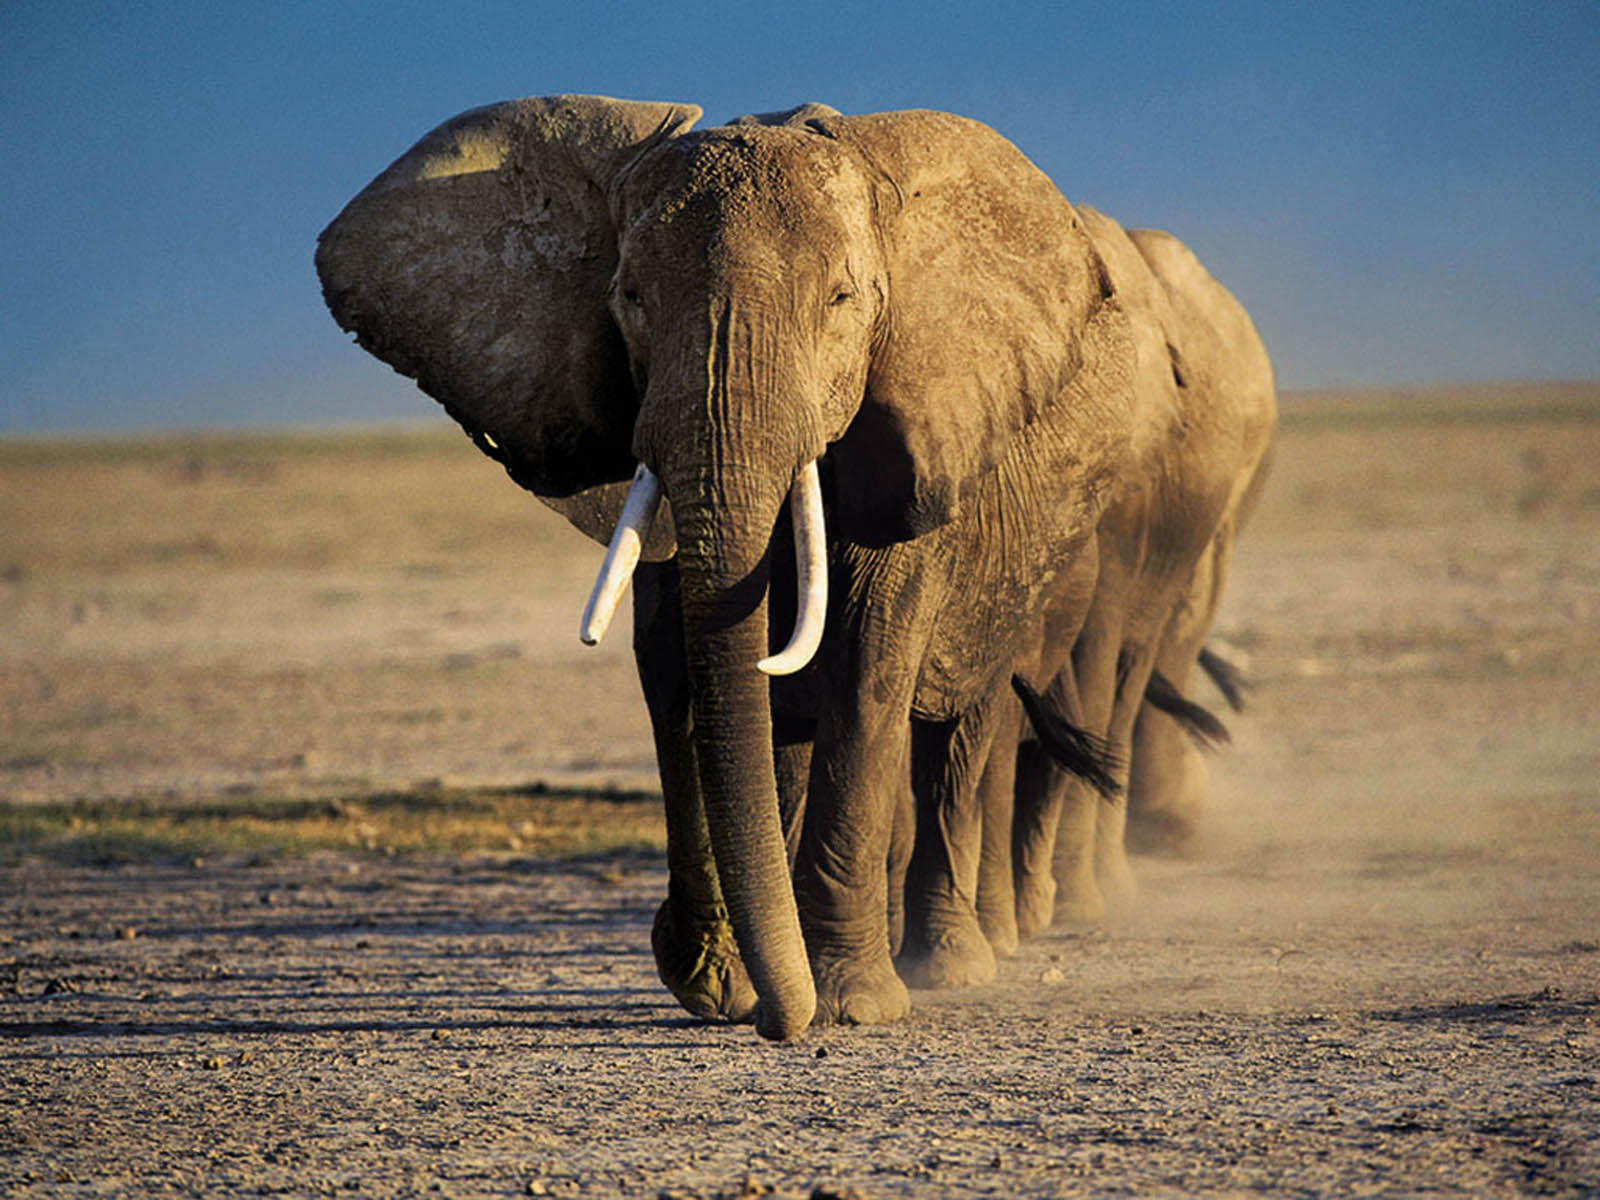 elephant wallpapers backgrounds wild animal elephants african animals africa geographic national wildlife bing baby favorite tag amazing